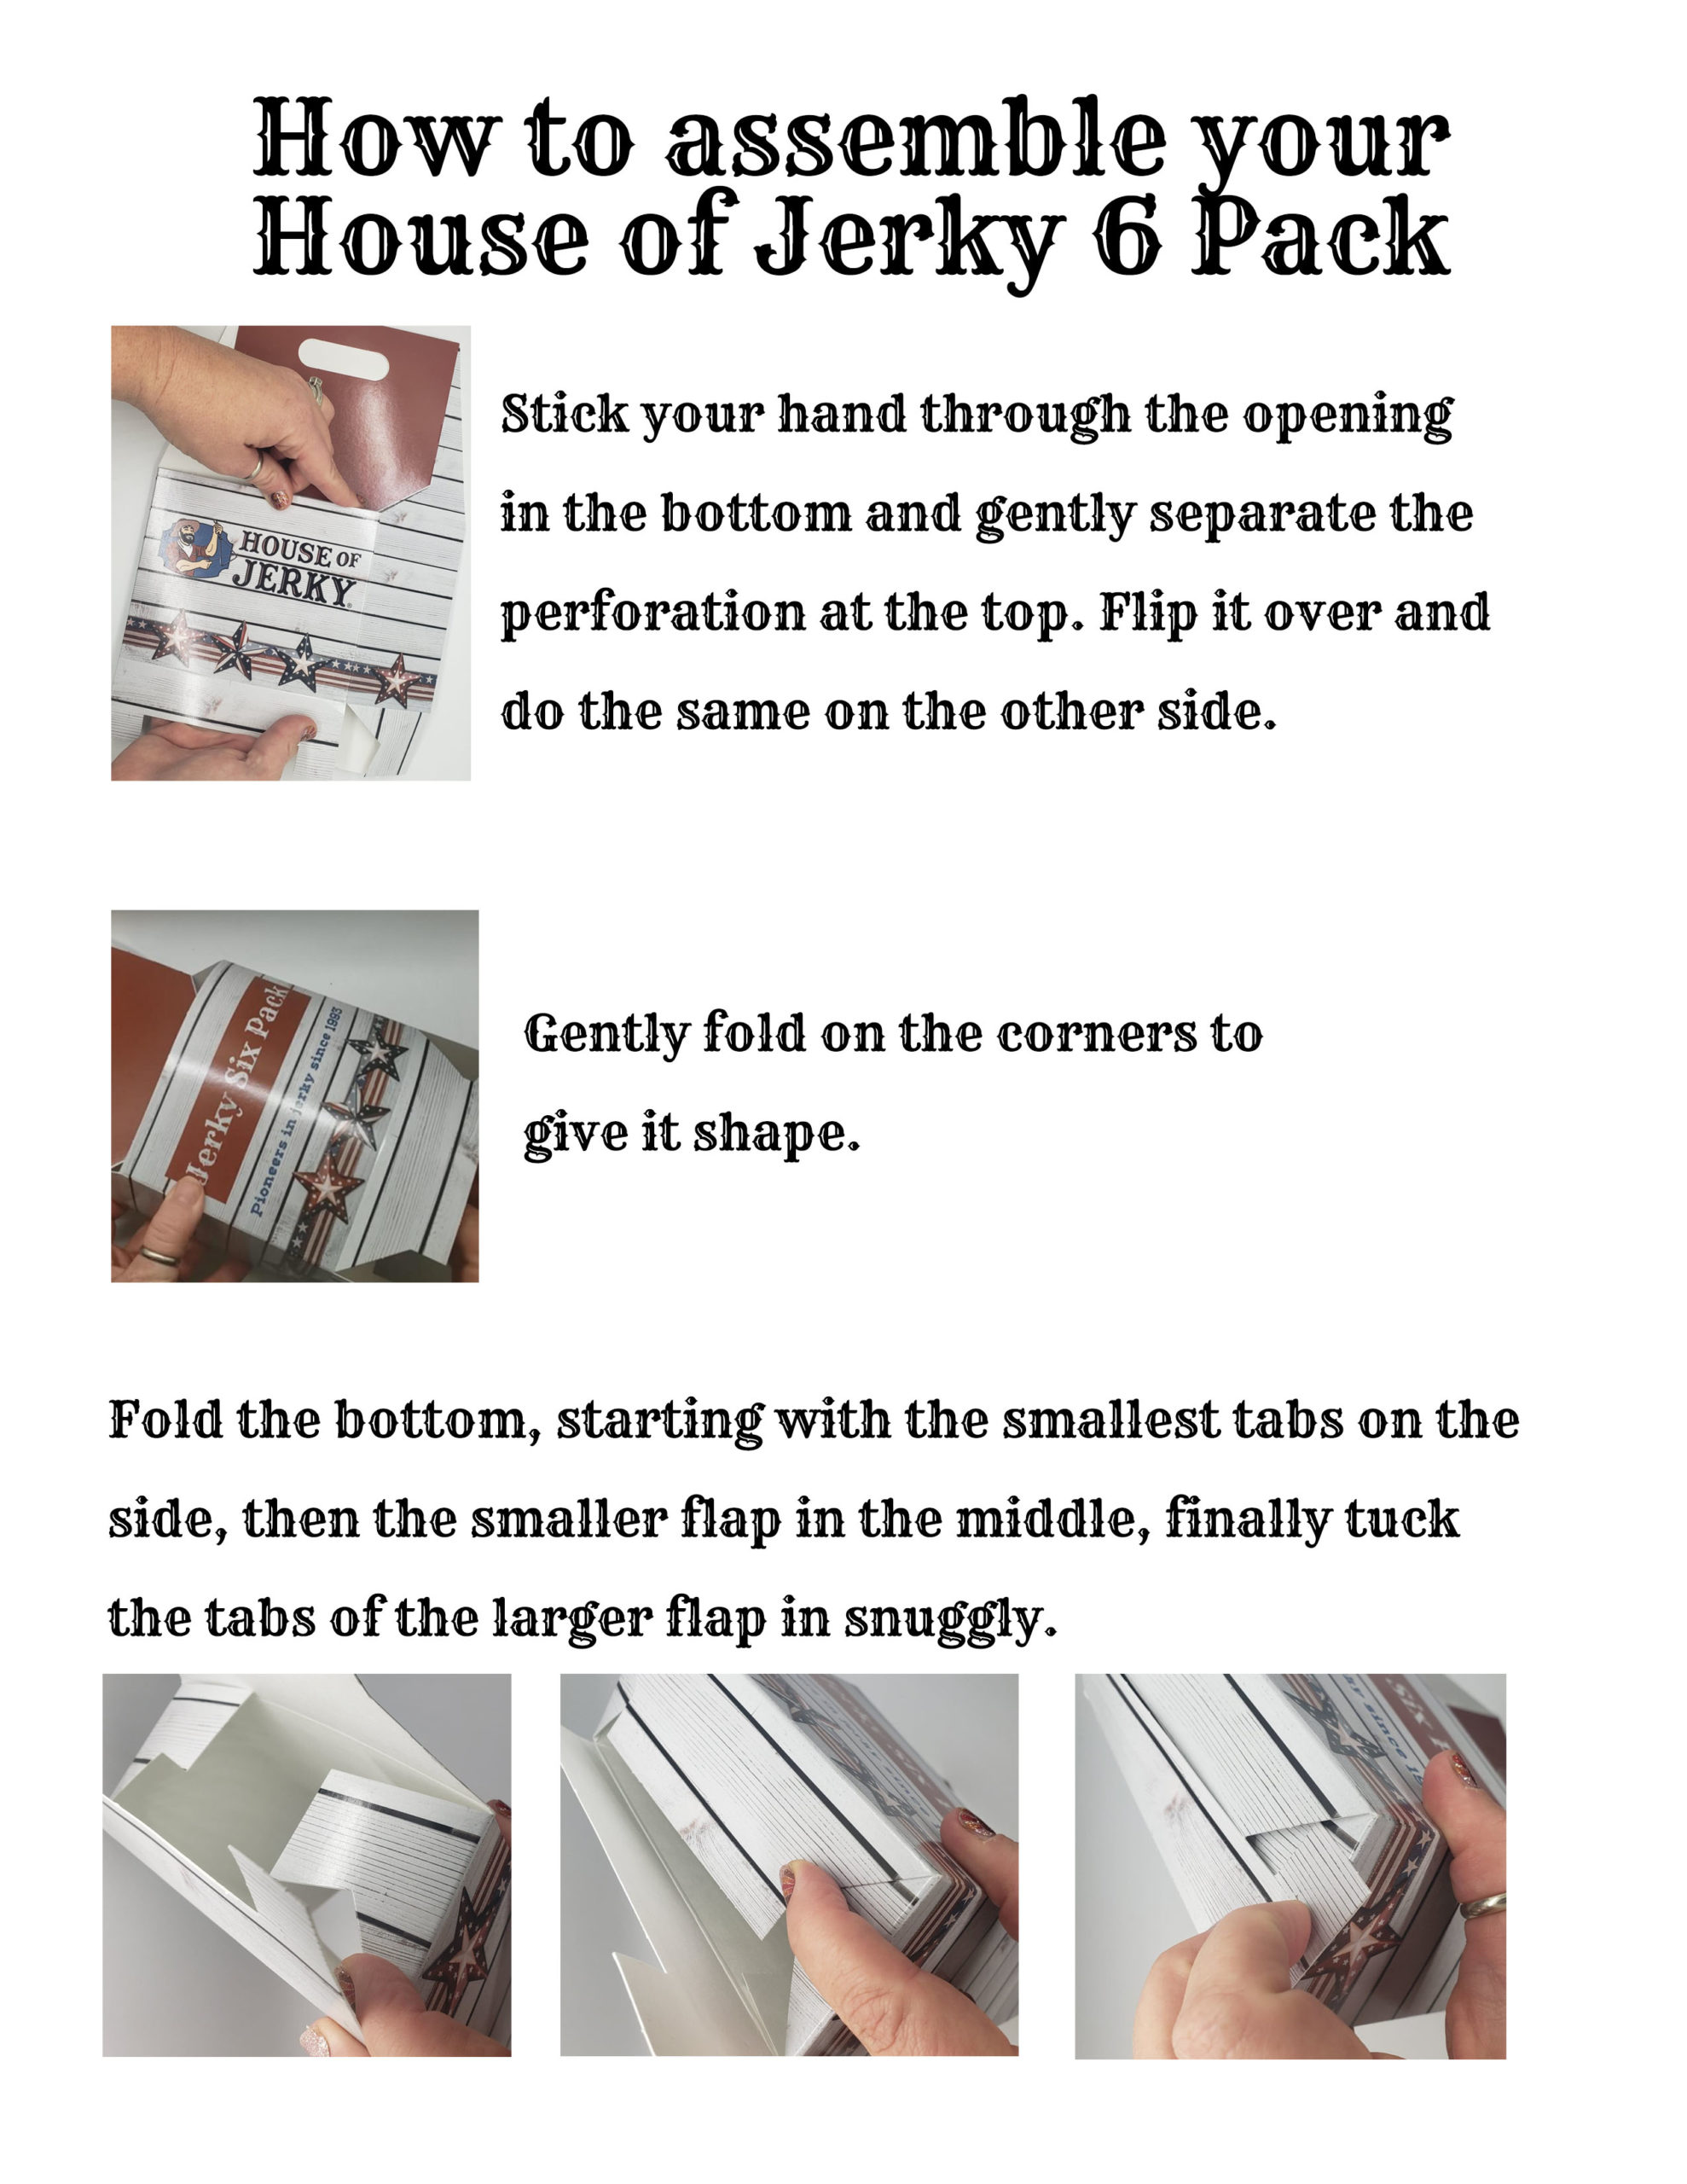 Instructions on how to assemble your House of Jerky 6 pack